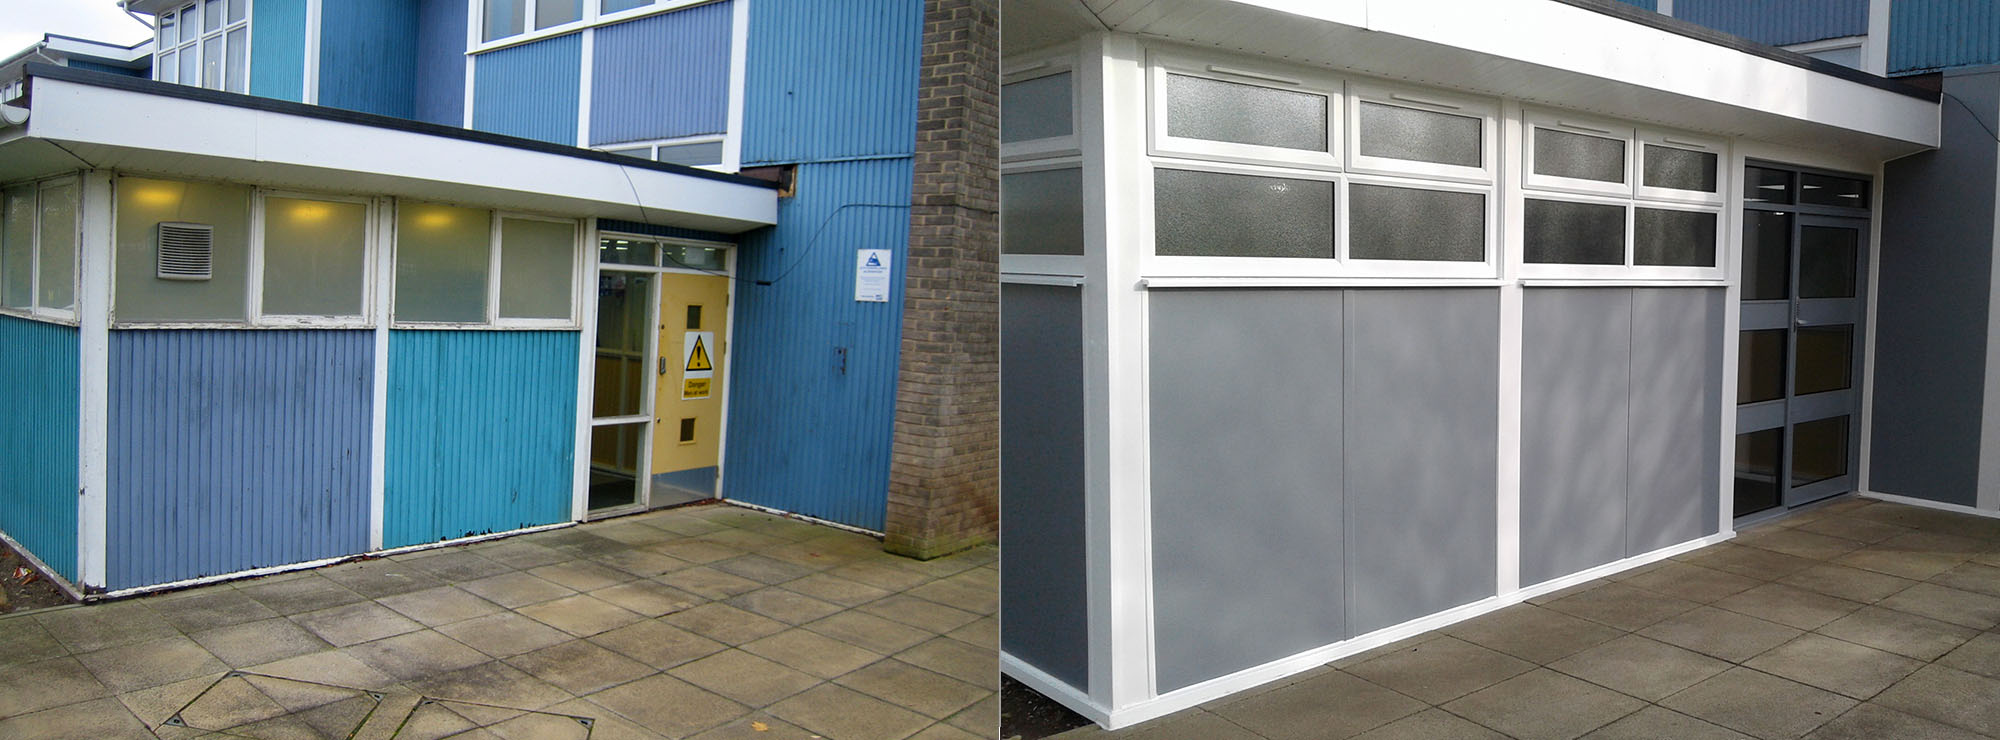 <strong>Primary School in West Midlands.</strong>Replacement existing timber cladding, windows and doors with commercial grey aluminium doors, aluminium faced insulated grey panels and white UPVC windows.